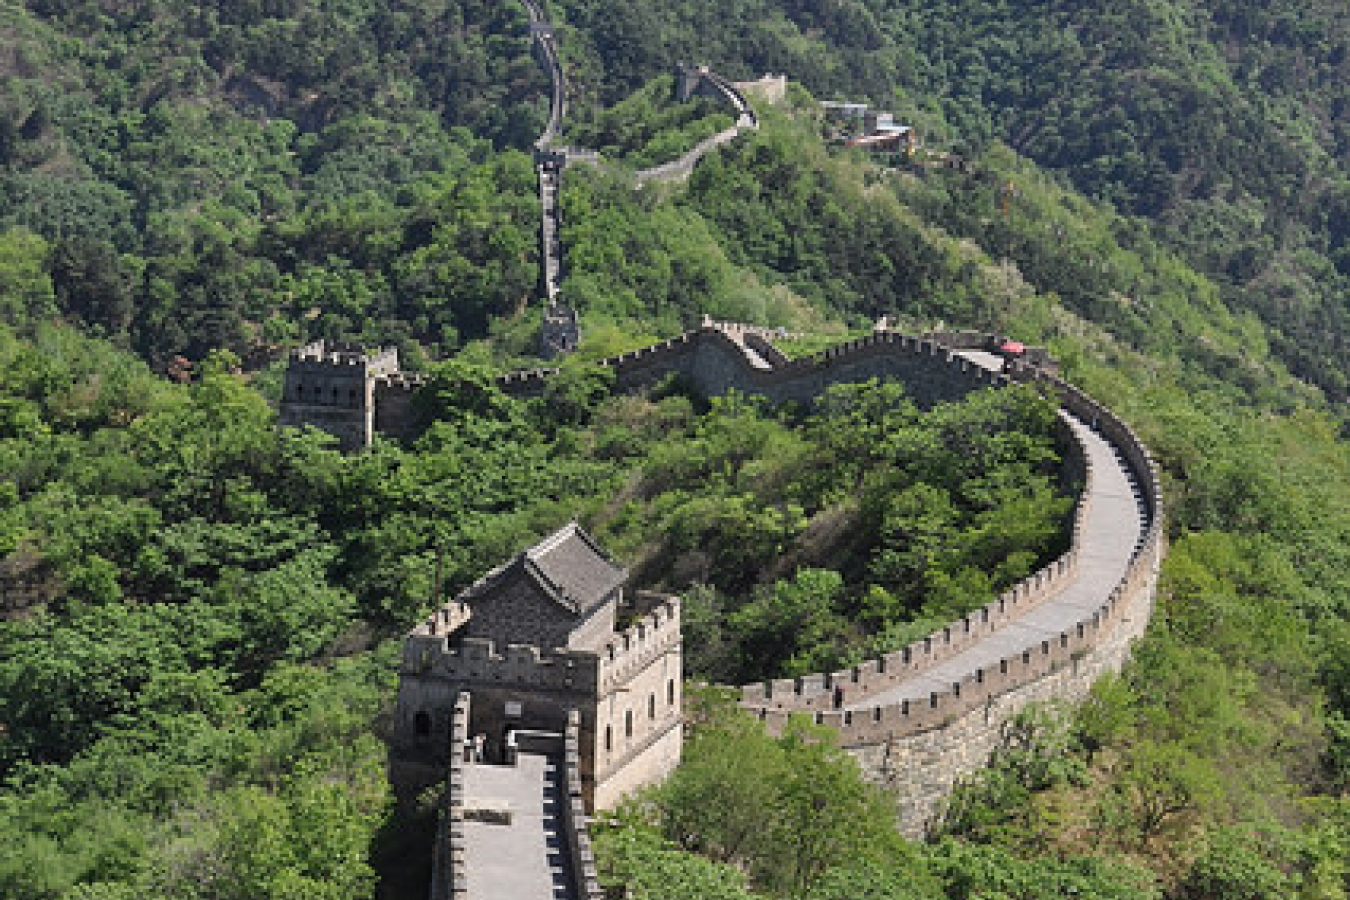 Great Wall of China originally to keep out invaders and for border control